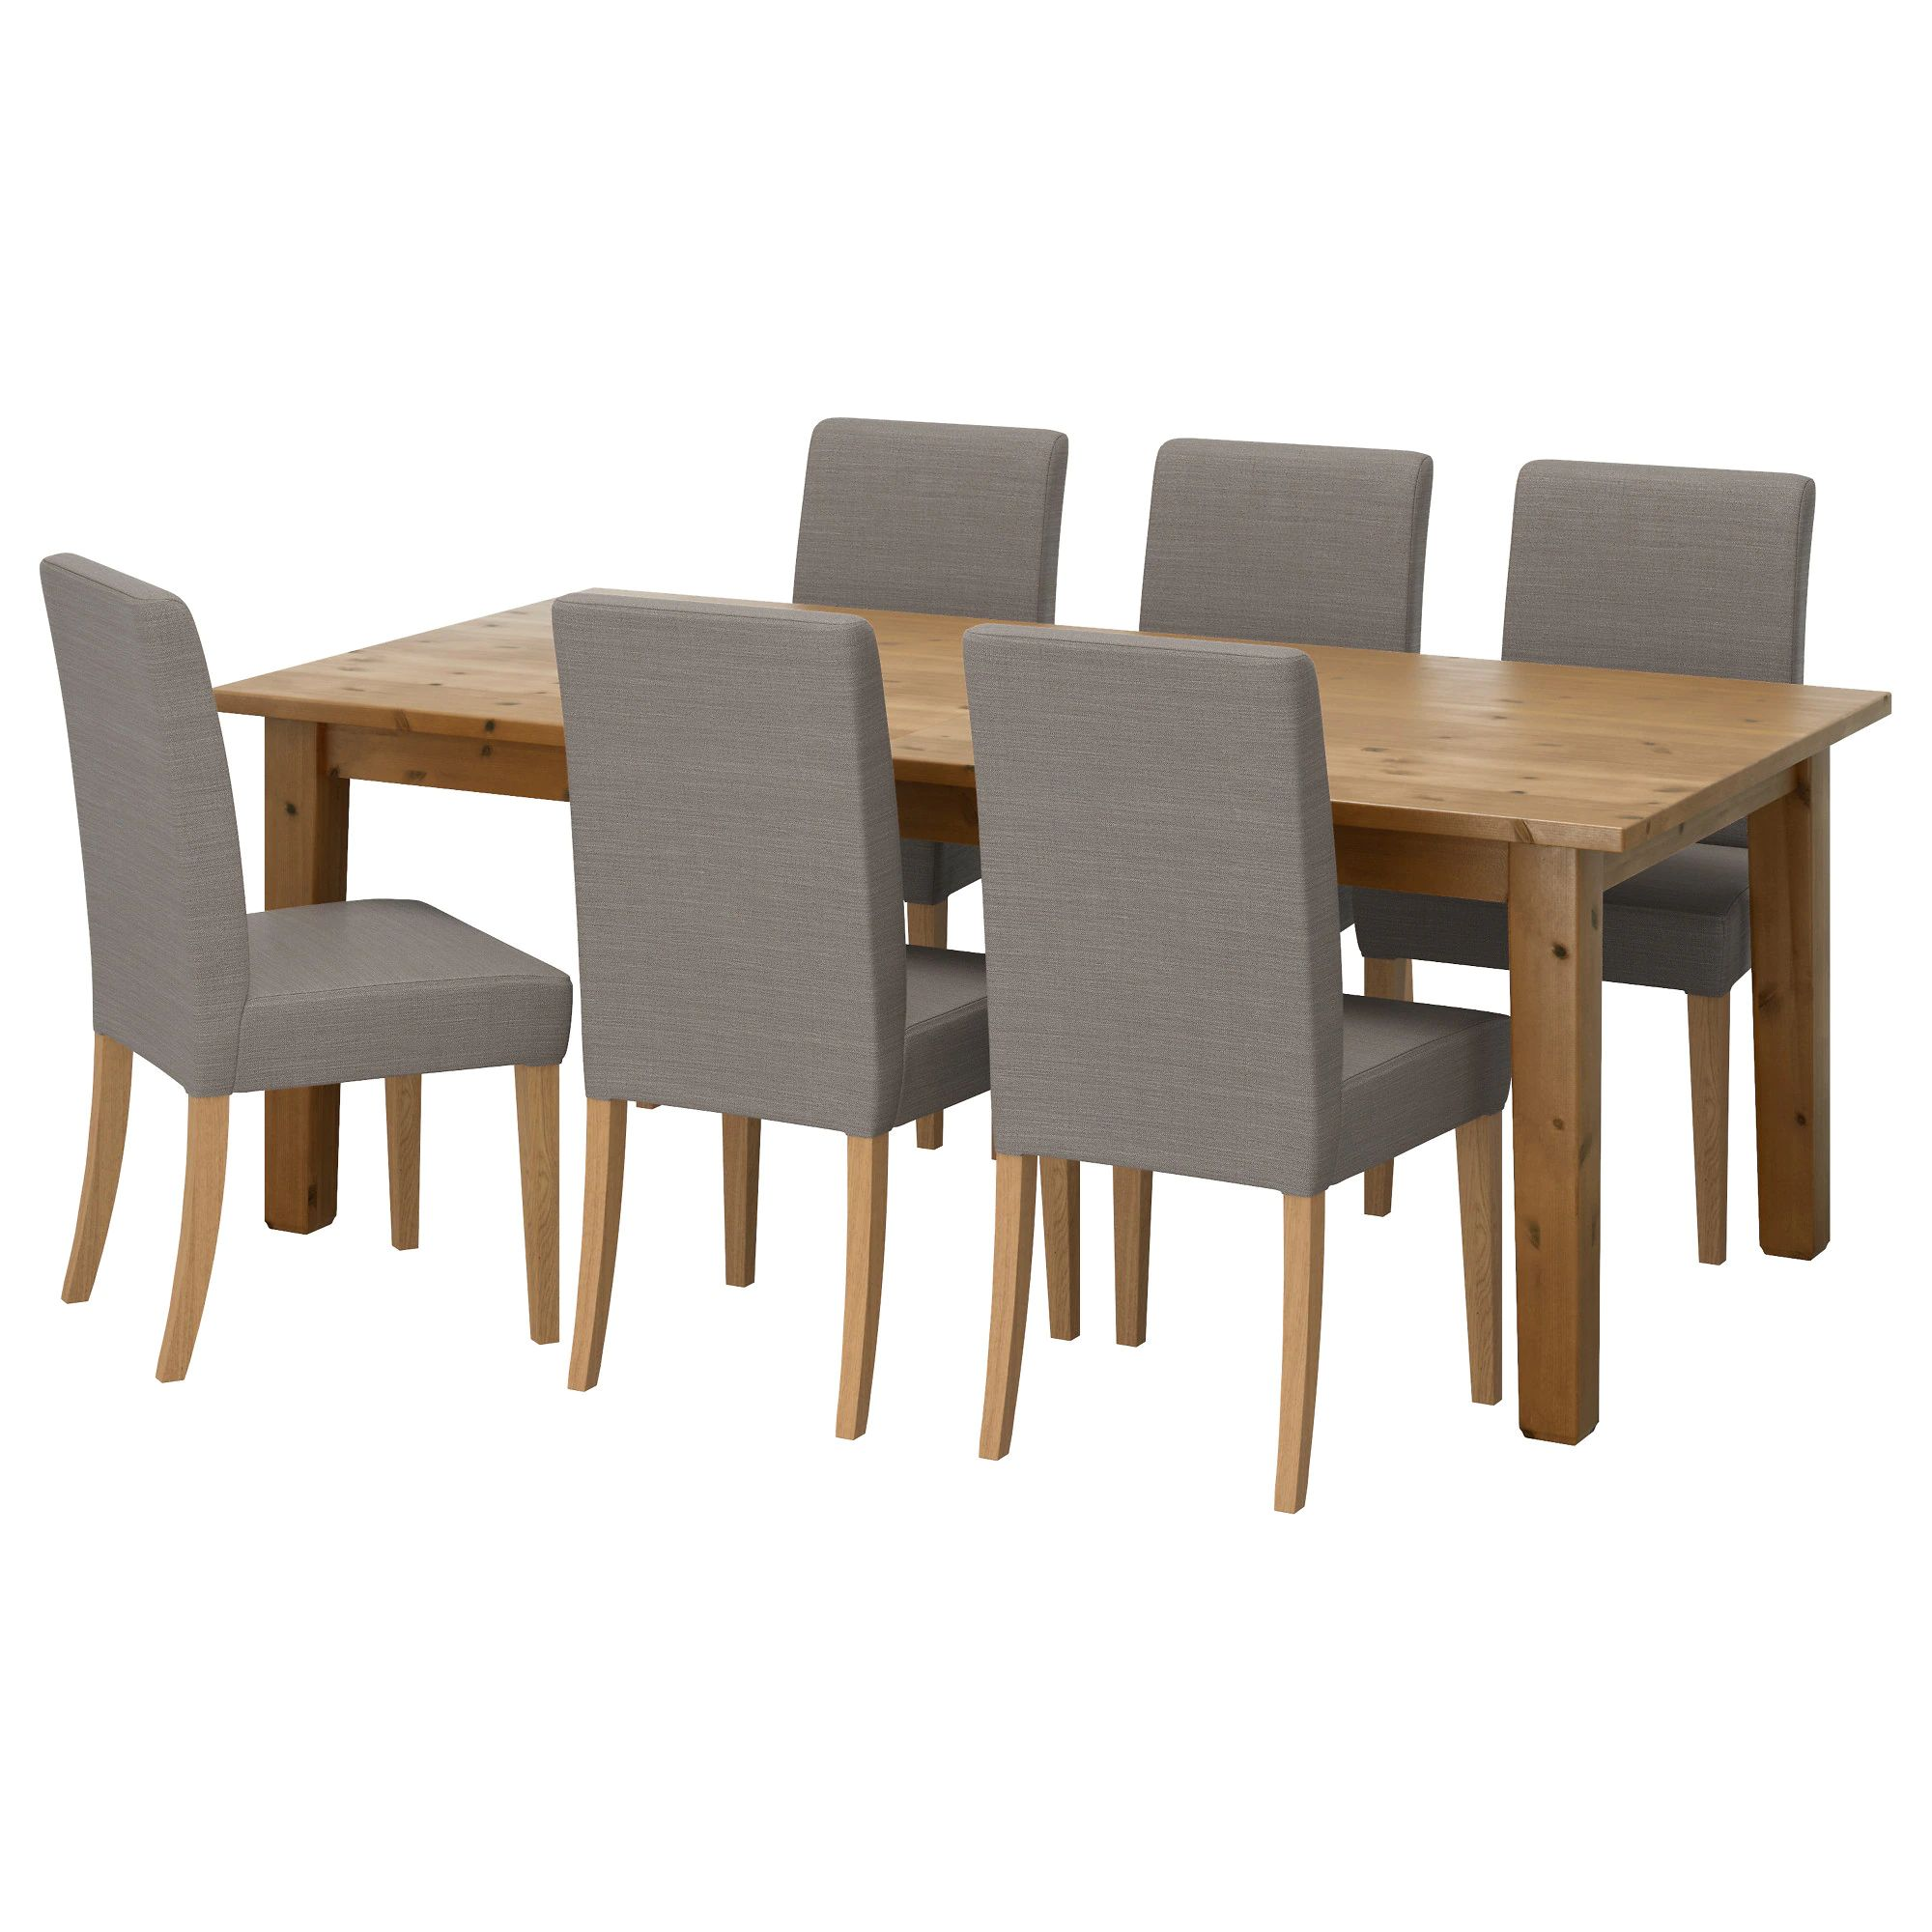 Storn s henriksdal table and 6 chairs antique stain nolhaga gray beige length